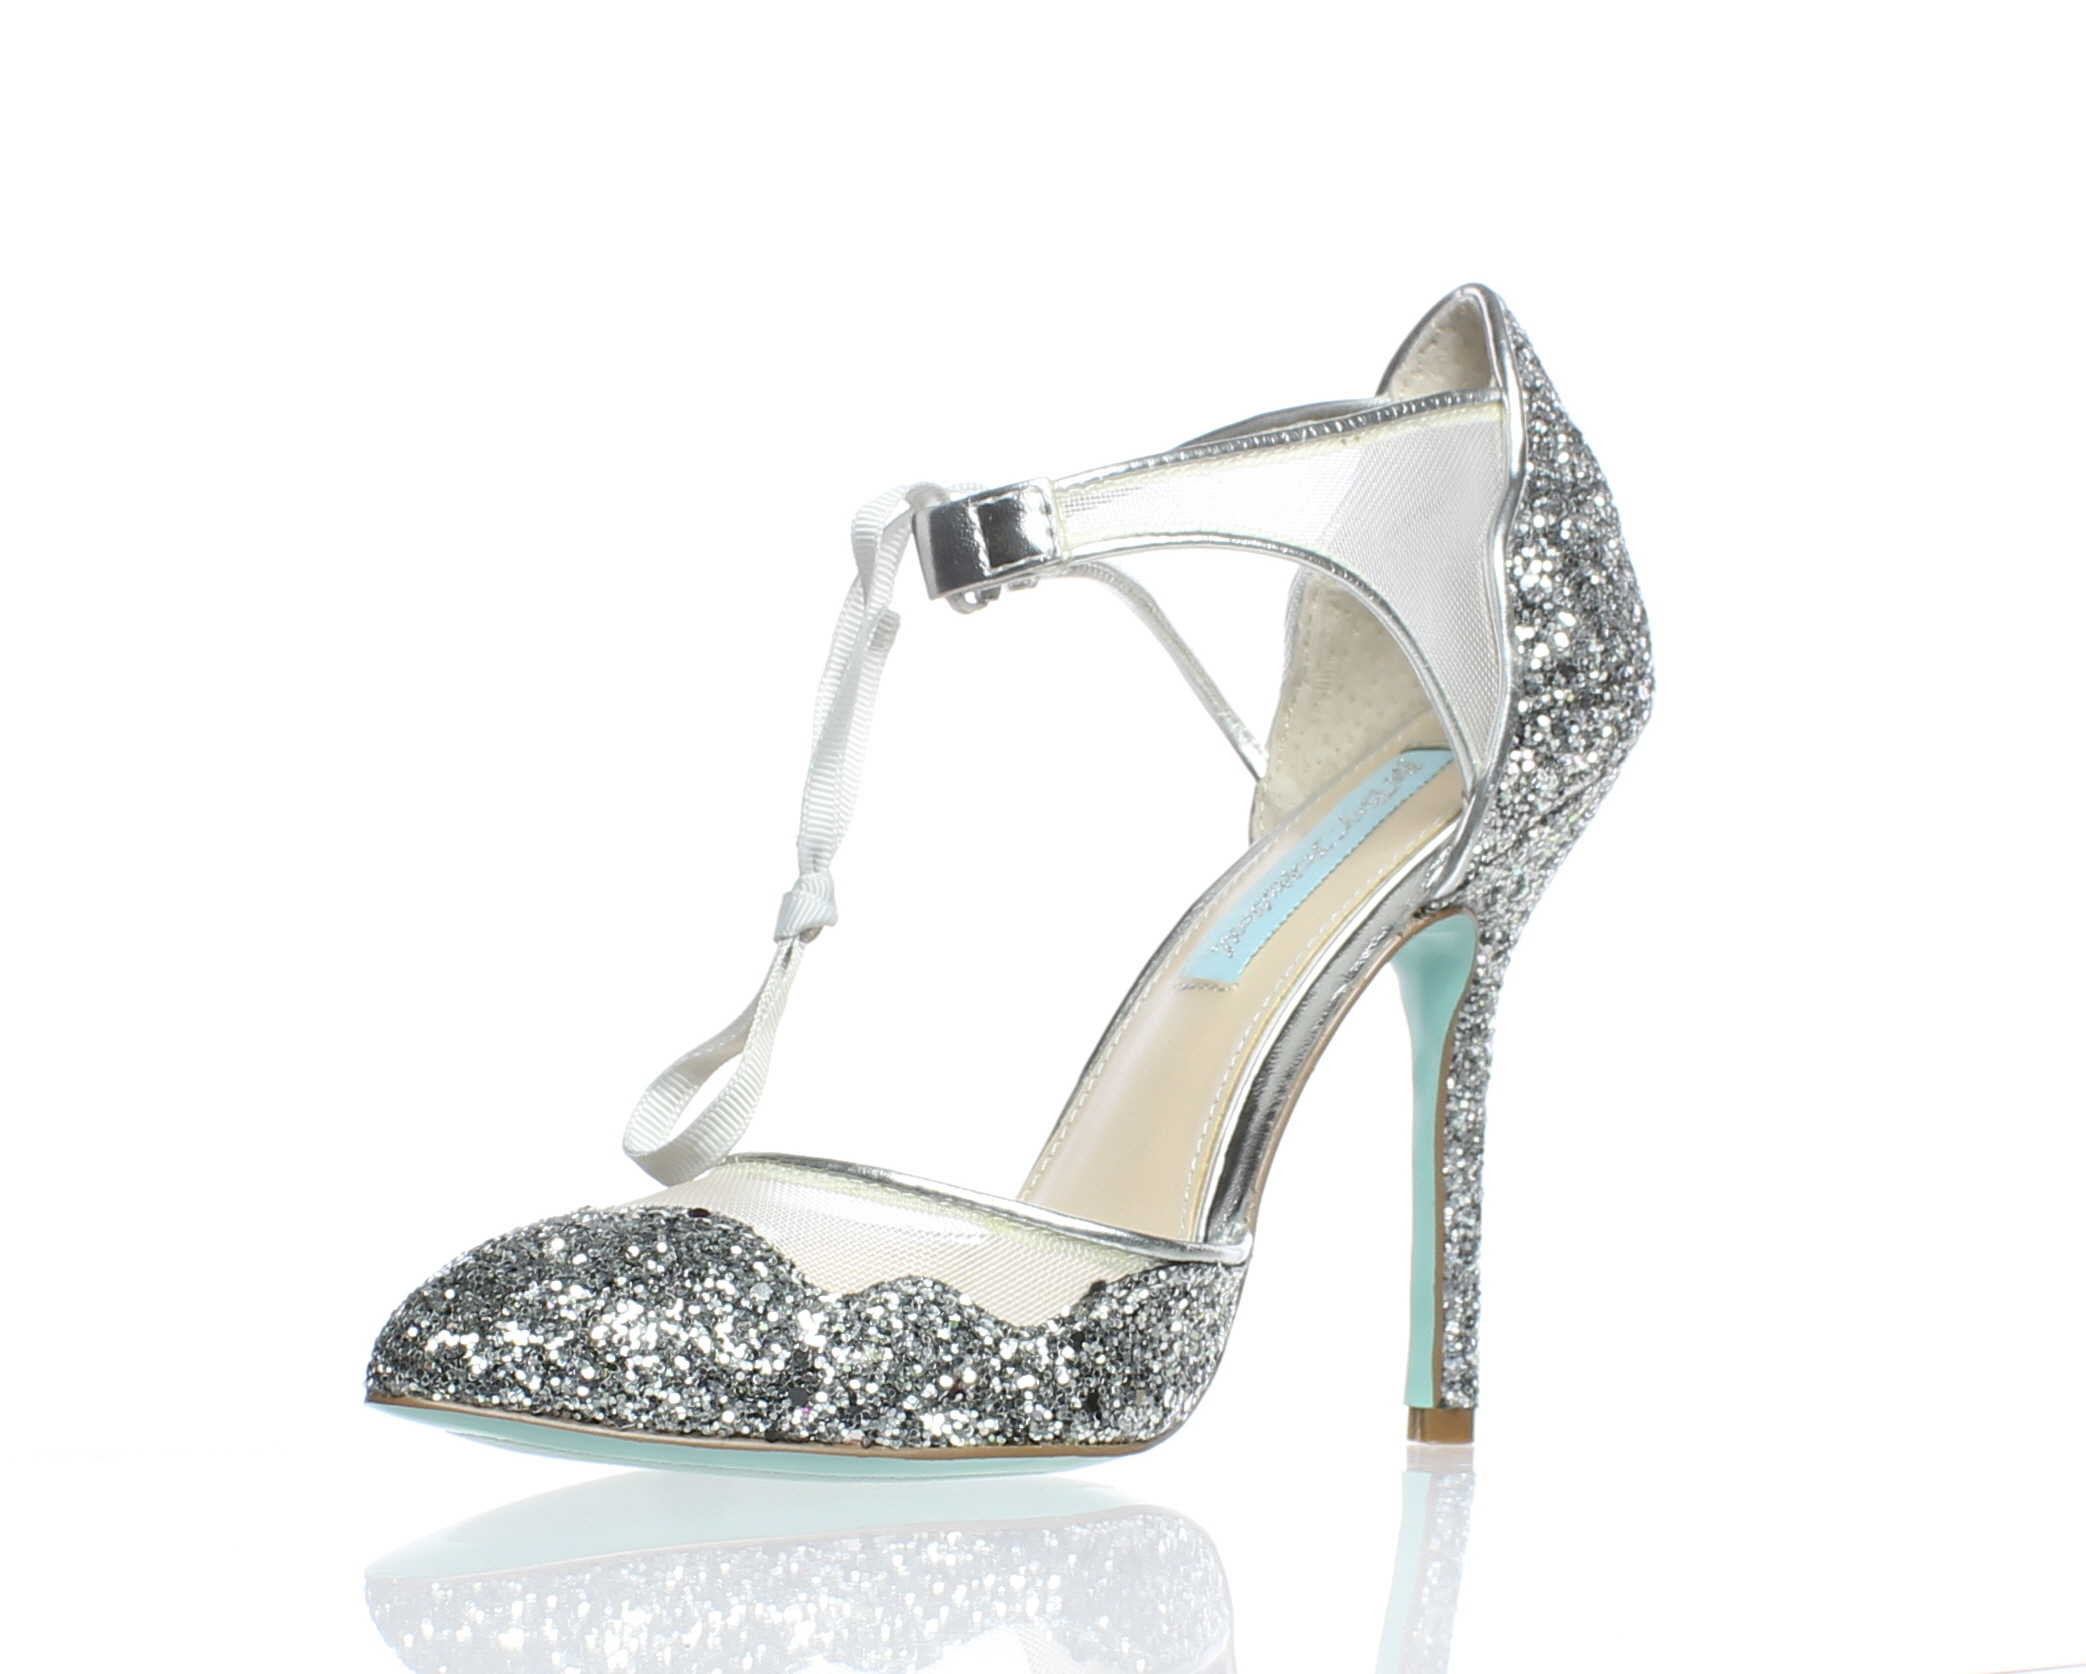 f7c3c31345f Blue by Betsey Johnson WOMENS Stela Silver Ankle Strap Heels Size 6 (173301)